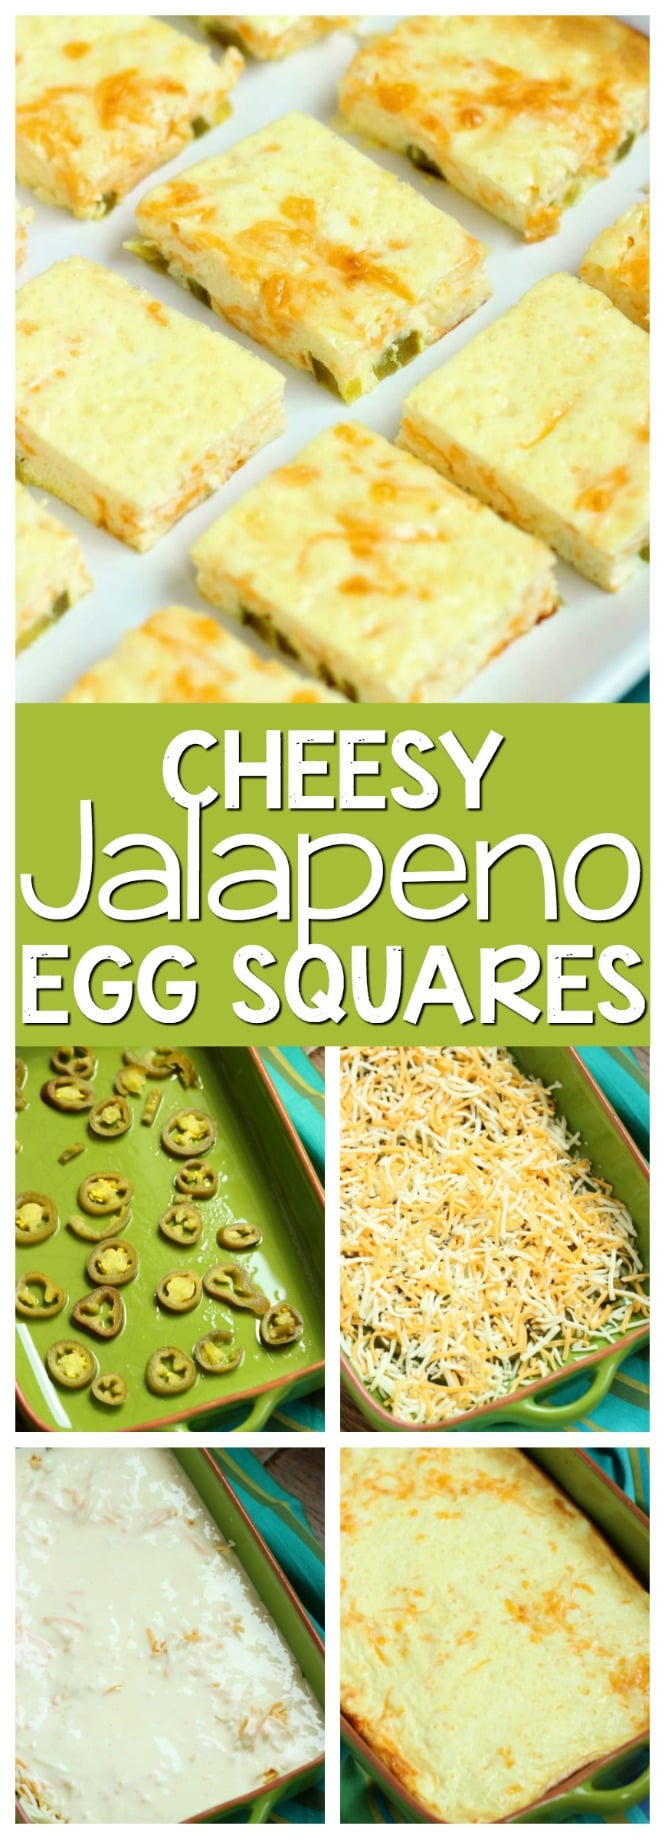 Cheesy Jalapeno Egg Squares - This appetizer recipe is so easy and perfect for those egg lovers!  Plus it's low carb!